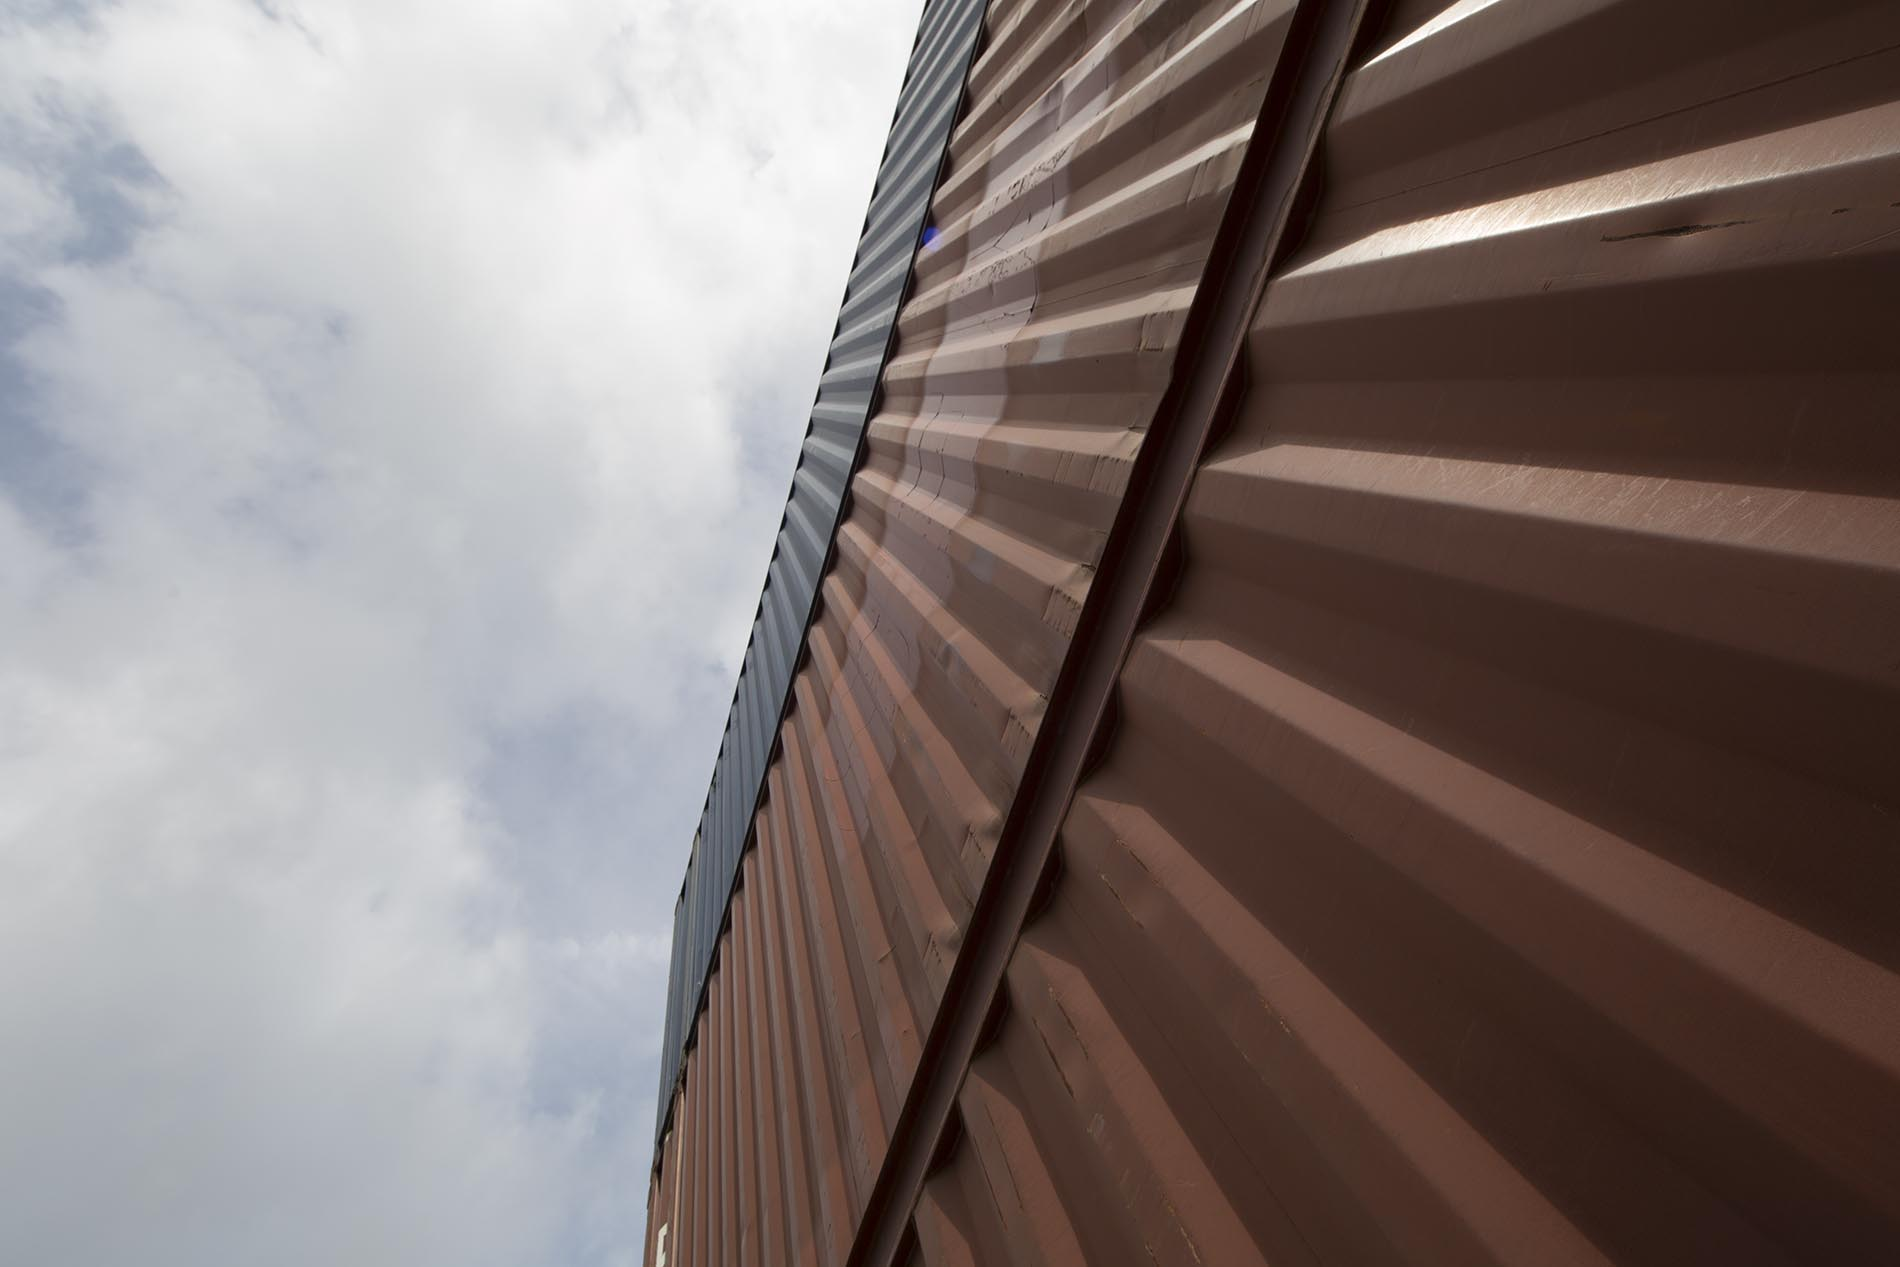 Containers from below